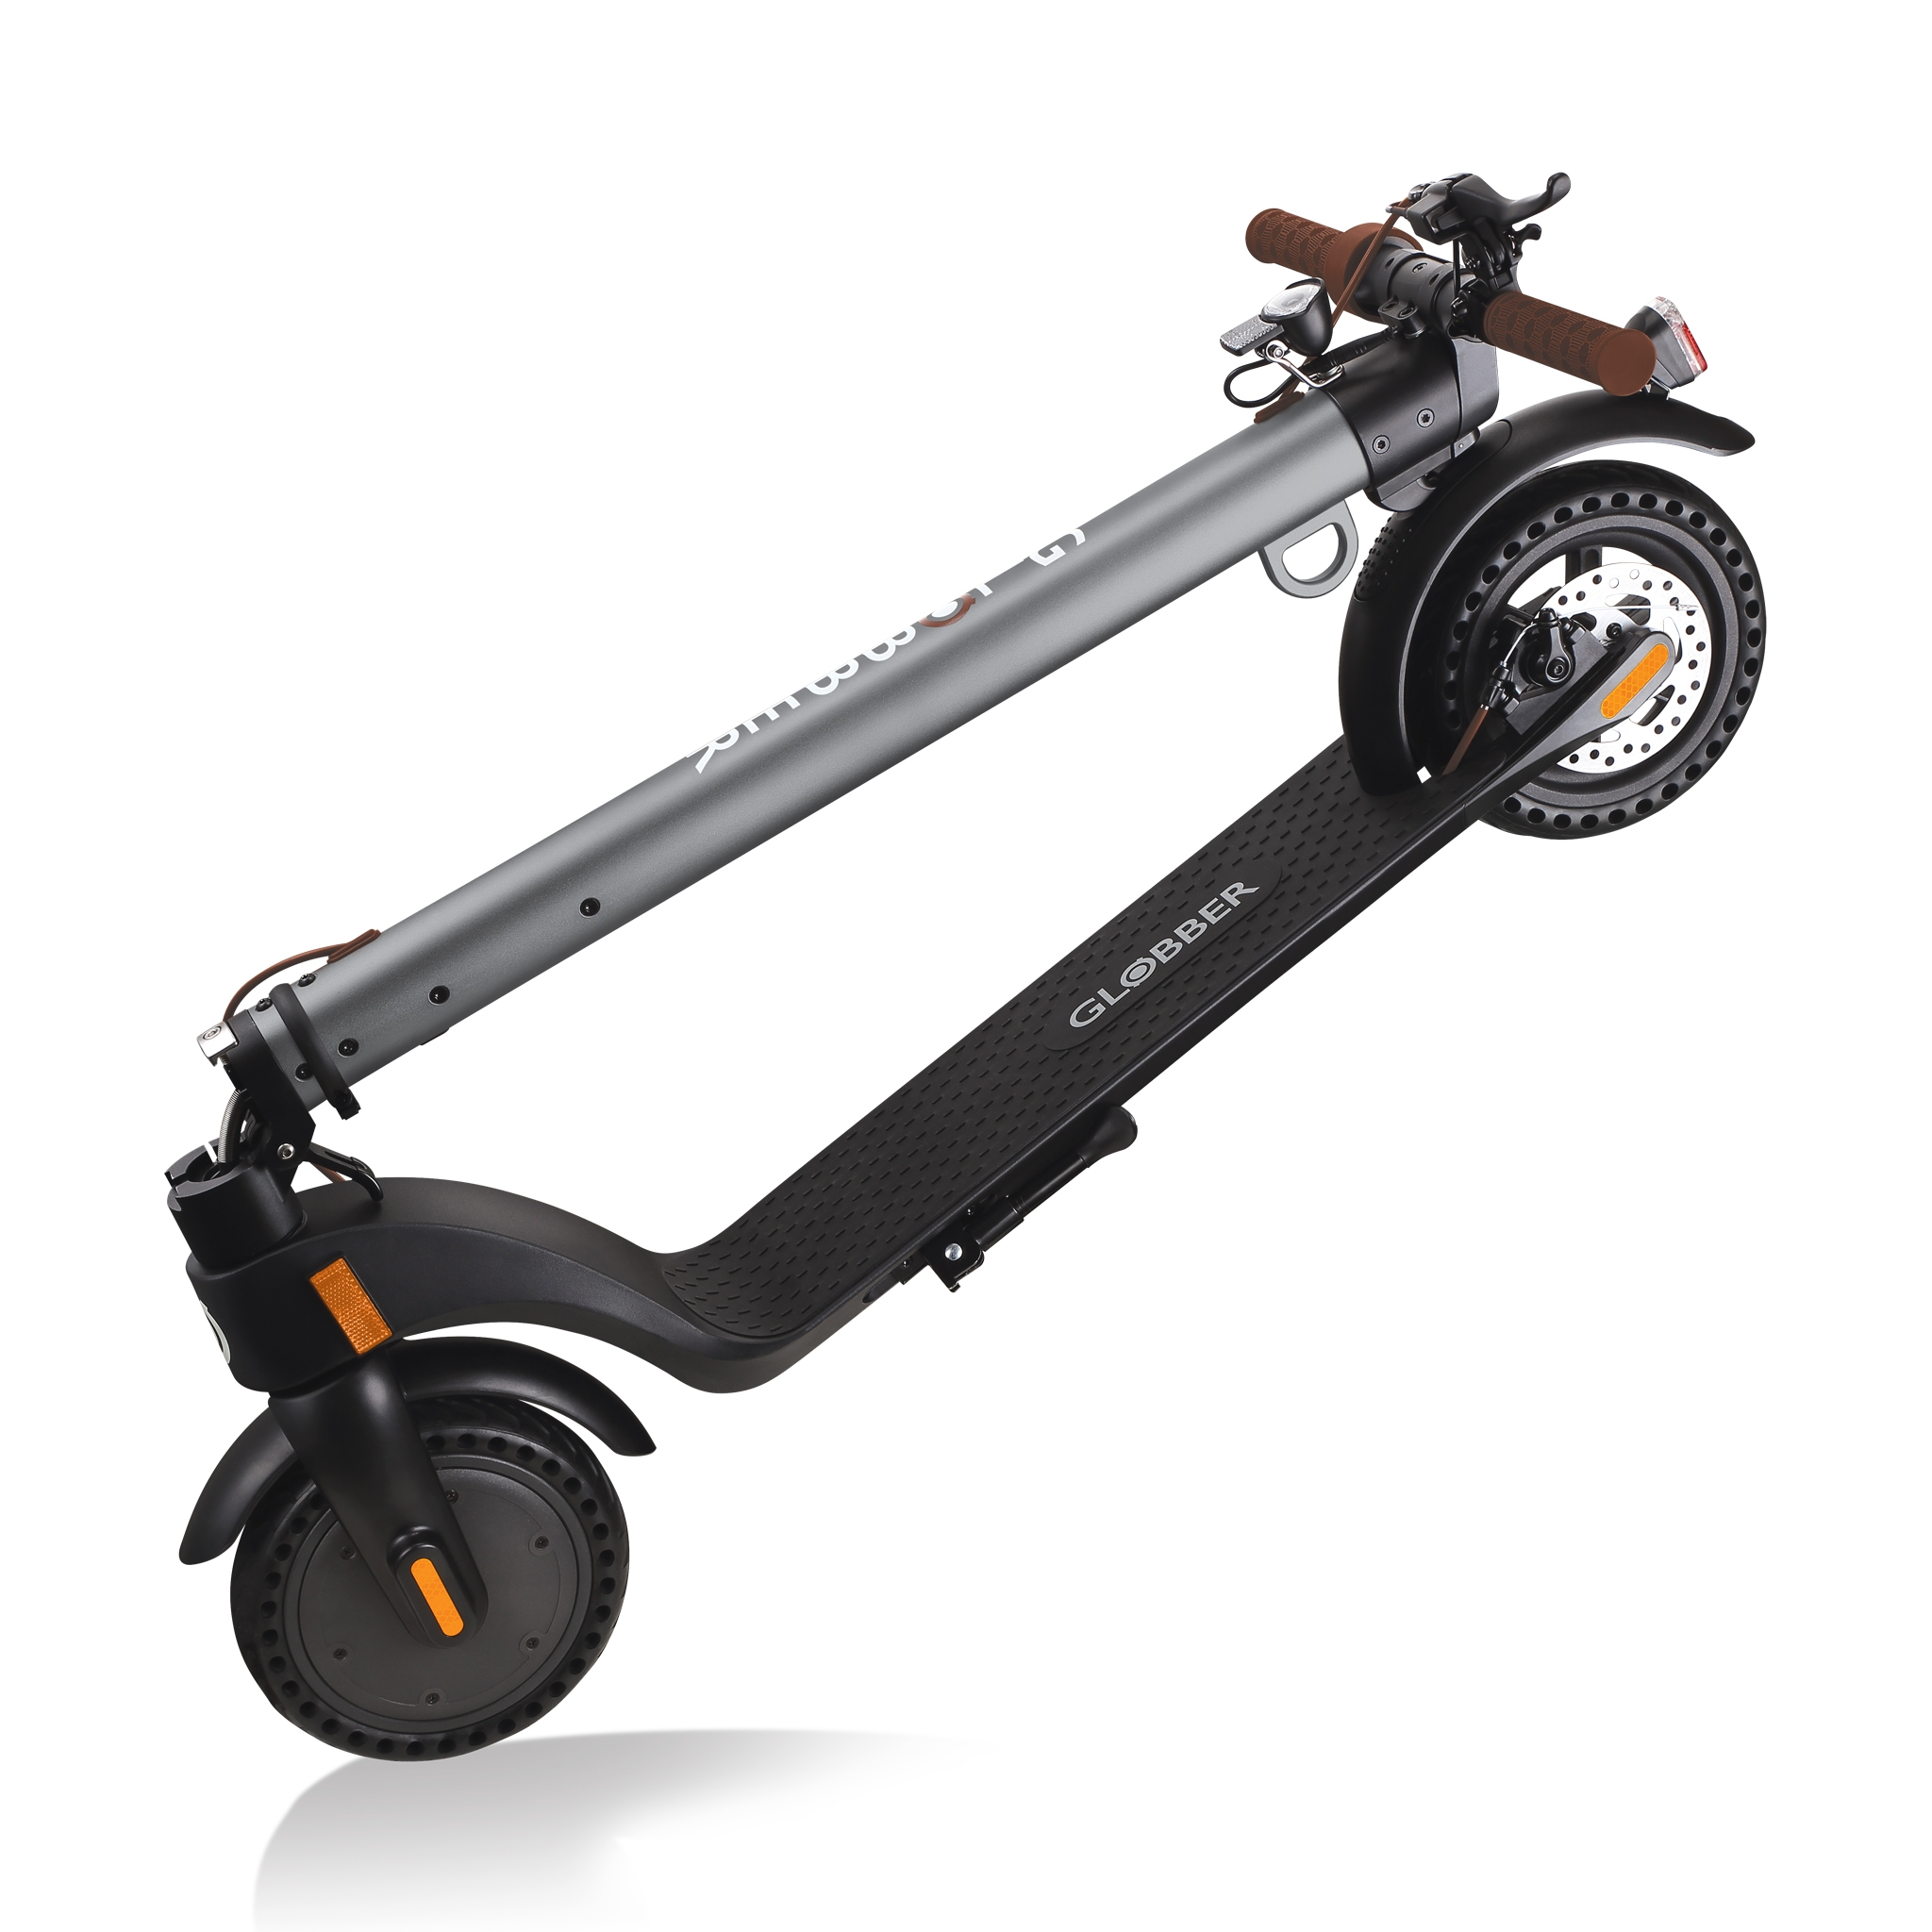 Globber-ONE-K-E-MOTION-23-electric-scooter-for-teens-and-adults-trolley-mode-compatible 1